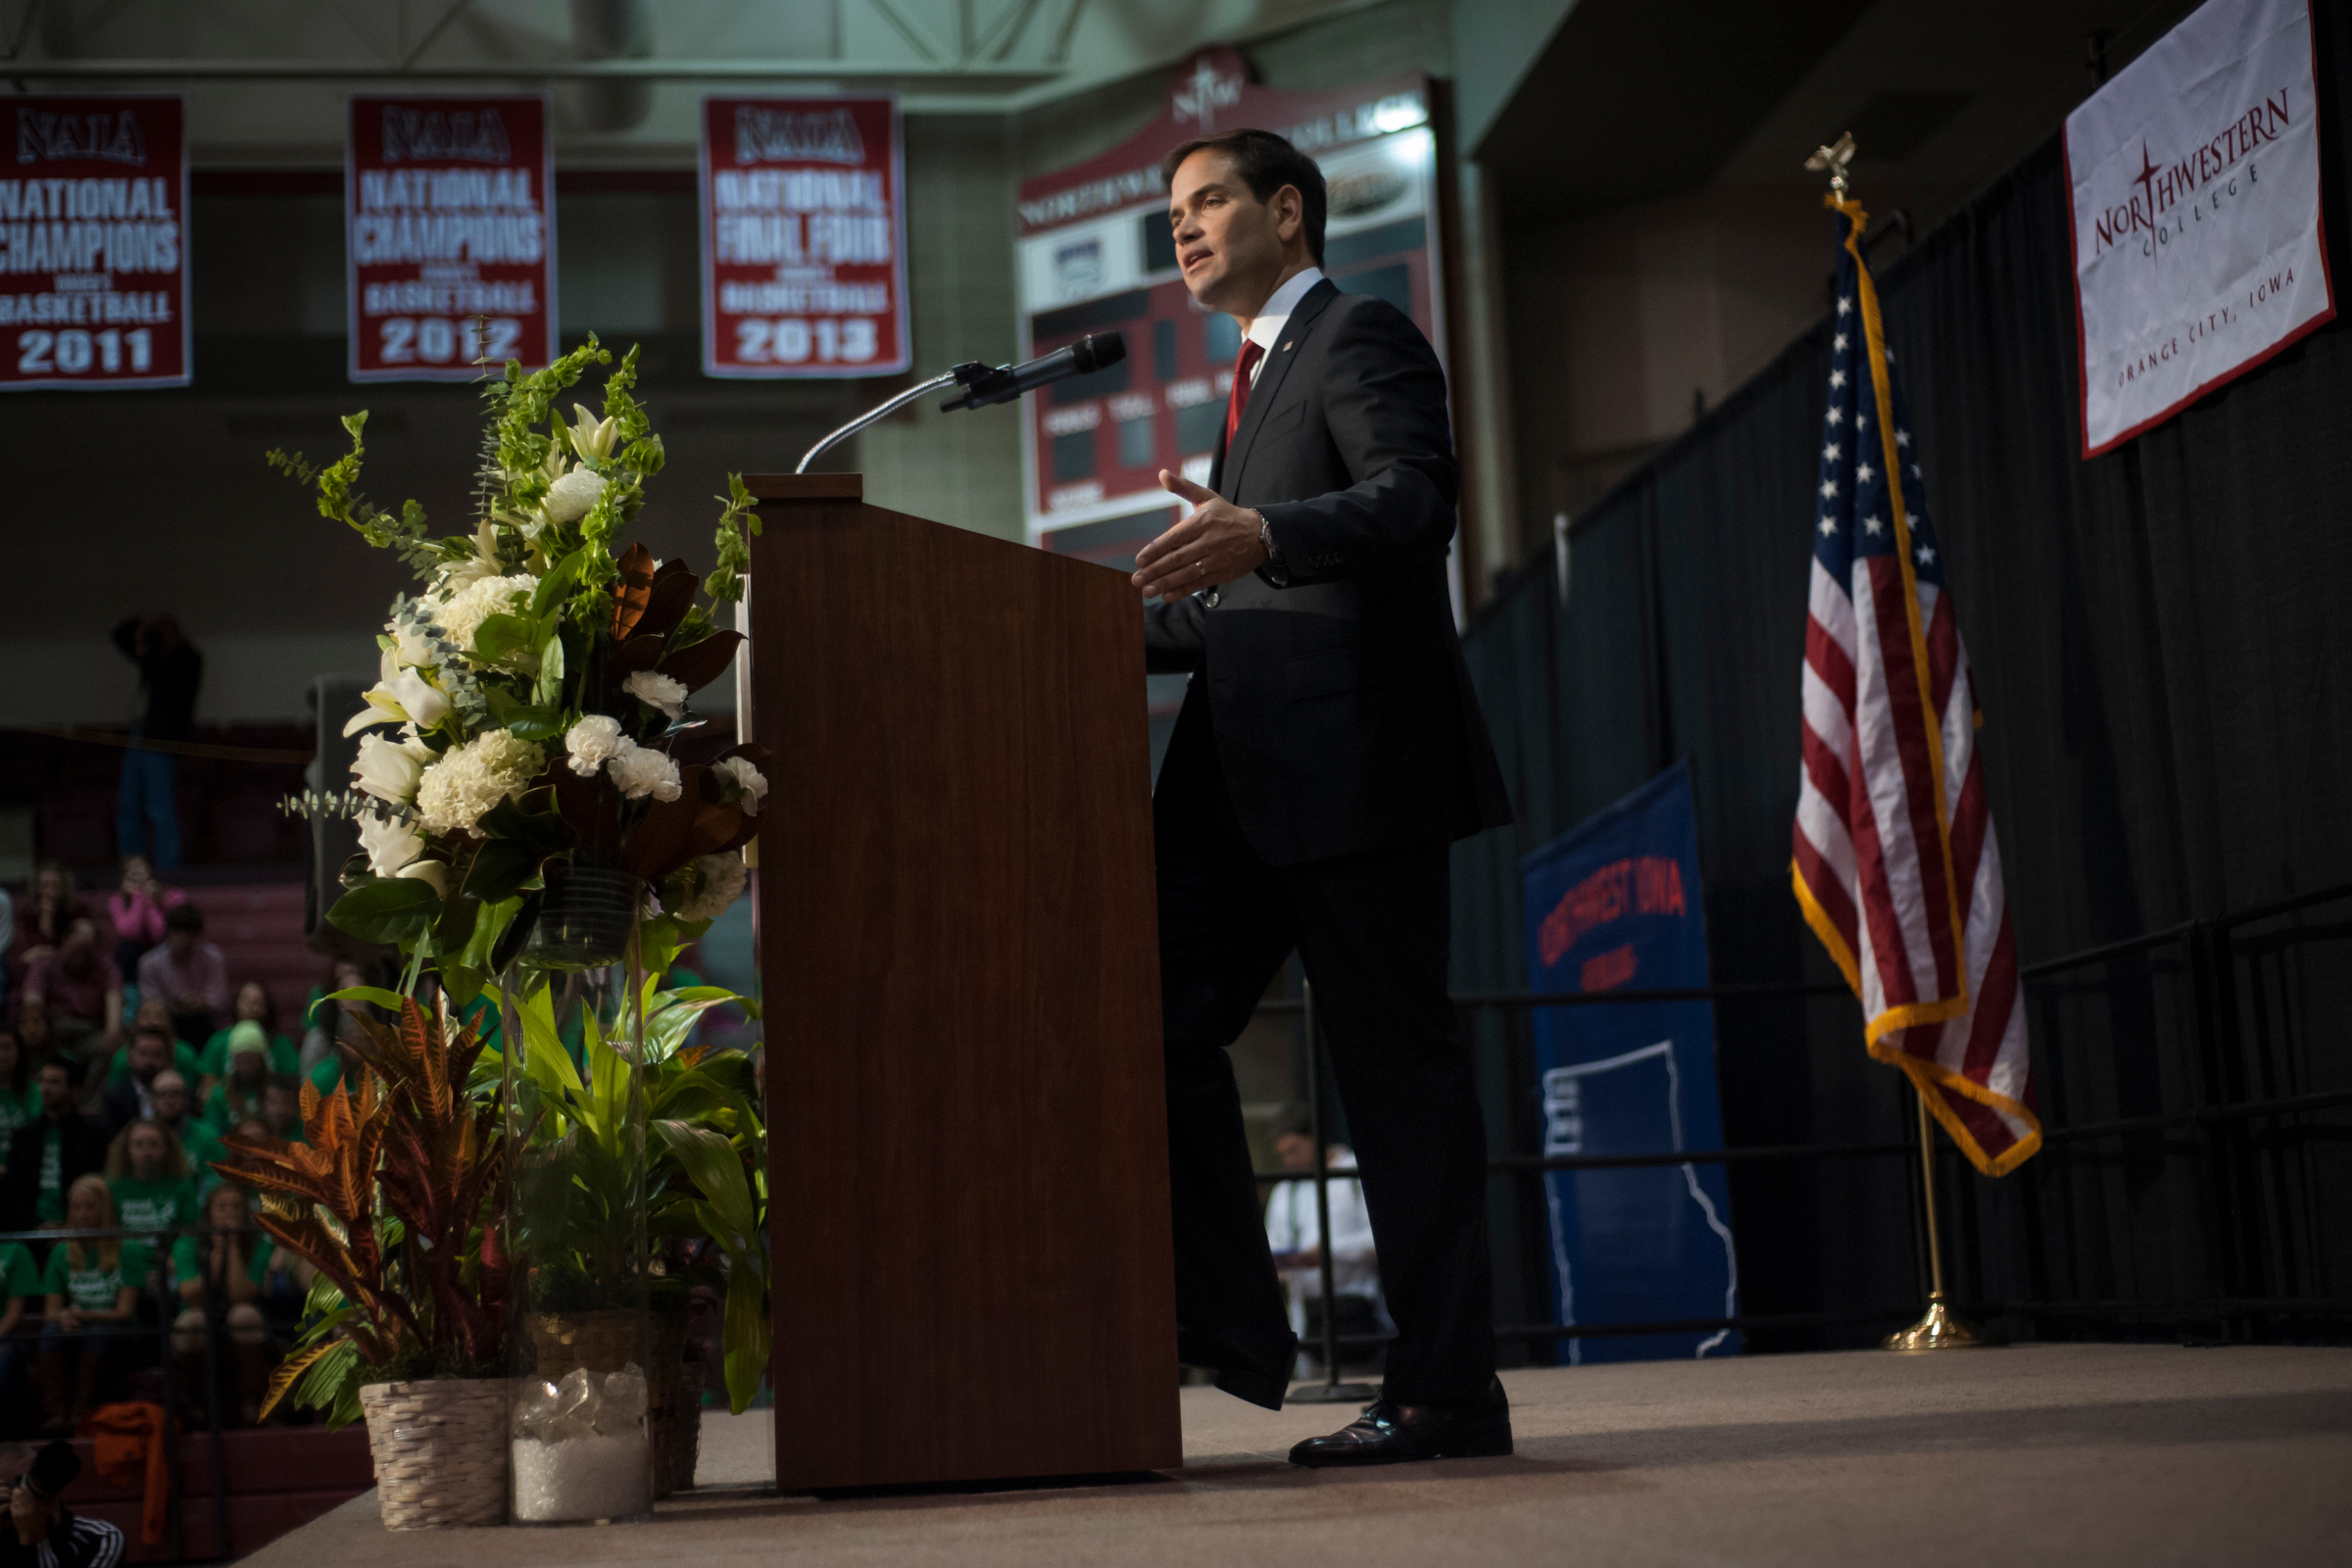 Republican presidential candidate Sen. Marco Rubio speaks to voters, the first of four candidates slated to appear at the Northwest Iowa Republican rally at Northwestern College in Orange City, Iowa.